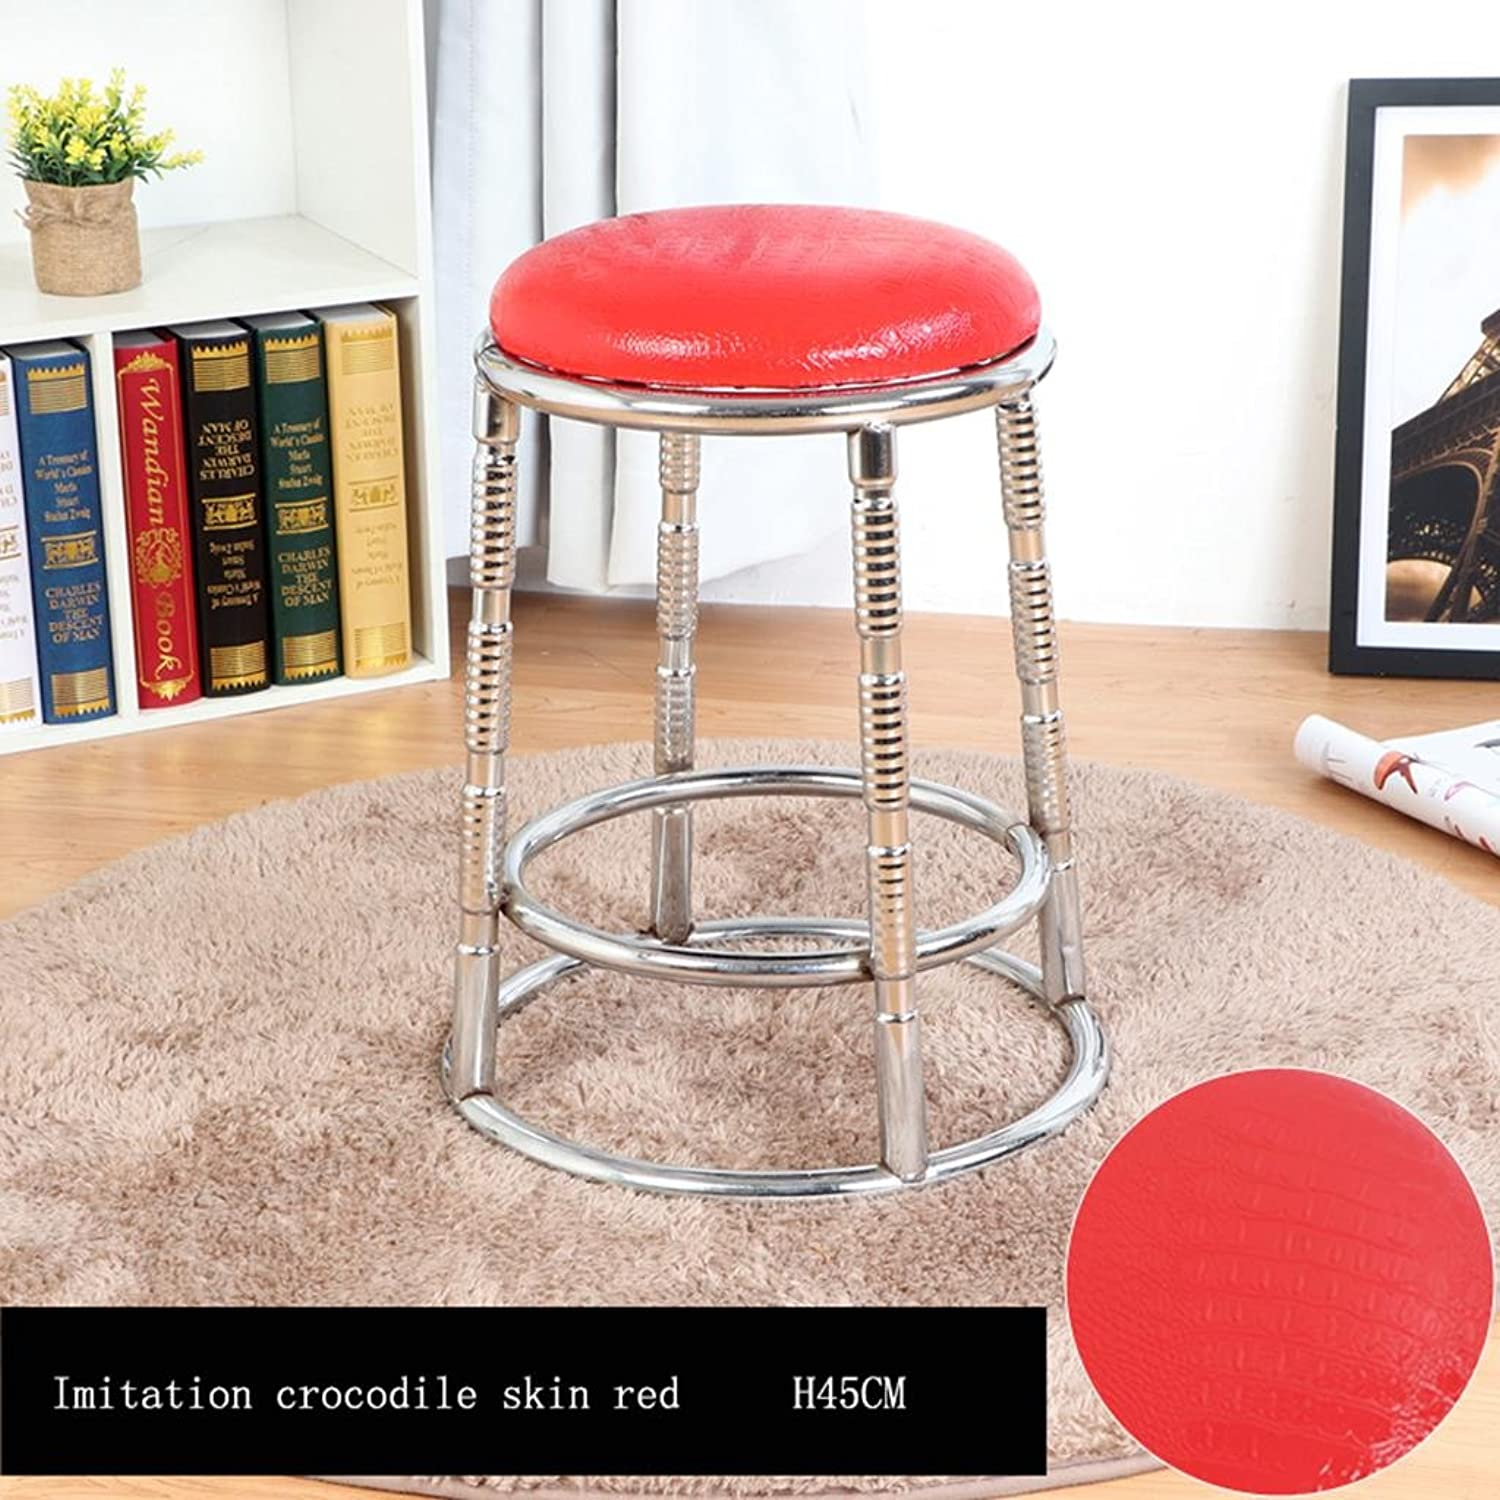 Lh yu Modern Kitchen stools with Metal Legs High Stool Bar Stools PU Seat Breakfast Bar,Removable Cushion,Stainless Steel Four Corner Stool feetRing Height More Comfortable